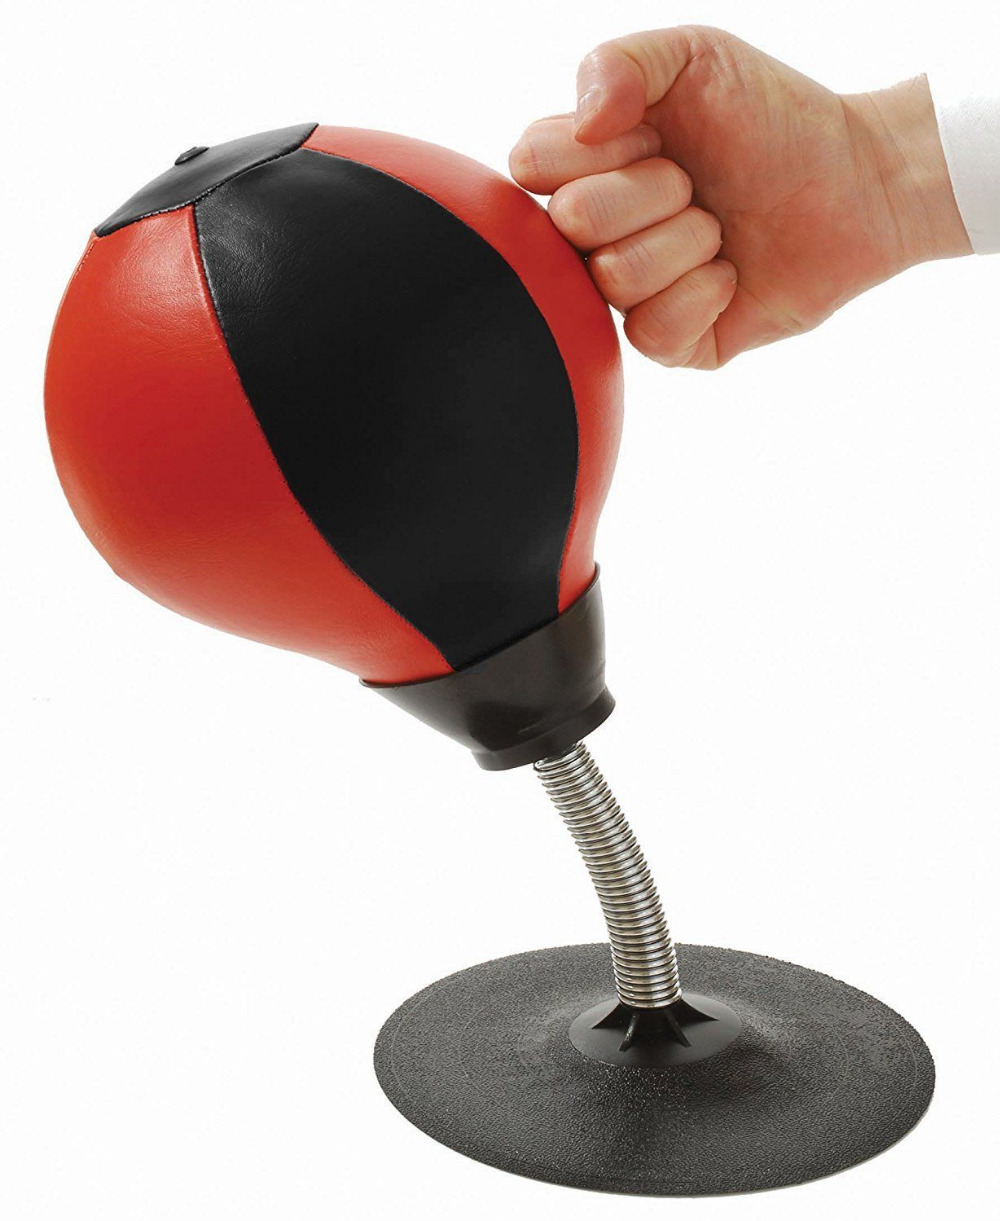 Dropshipping New Desktop Punching Speed Ball Heavy Duty Suction Pressure Relieve Stress Boxing Bag Anti-snxiety Toys 7